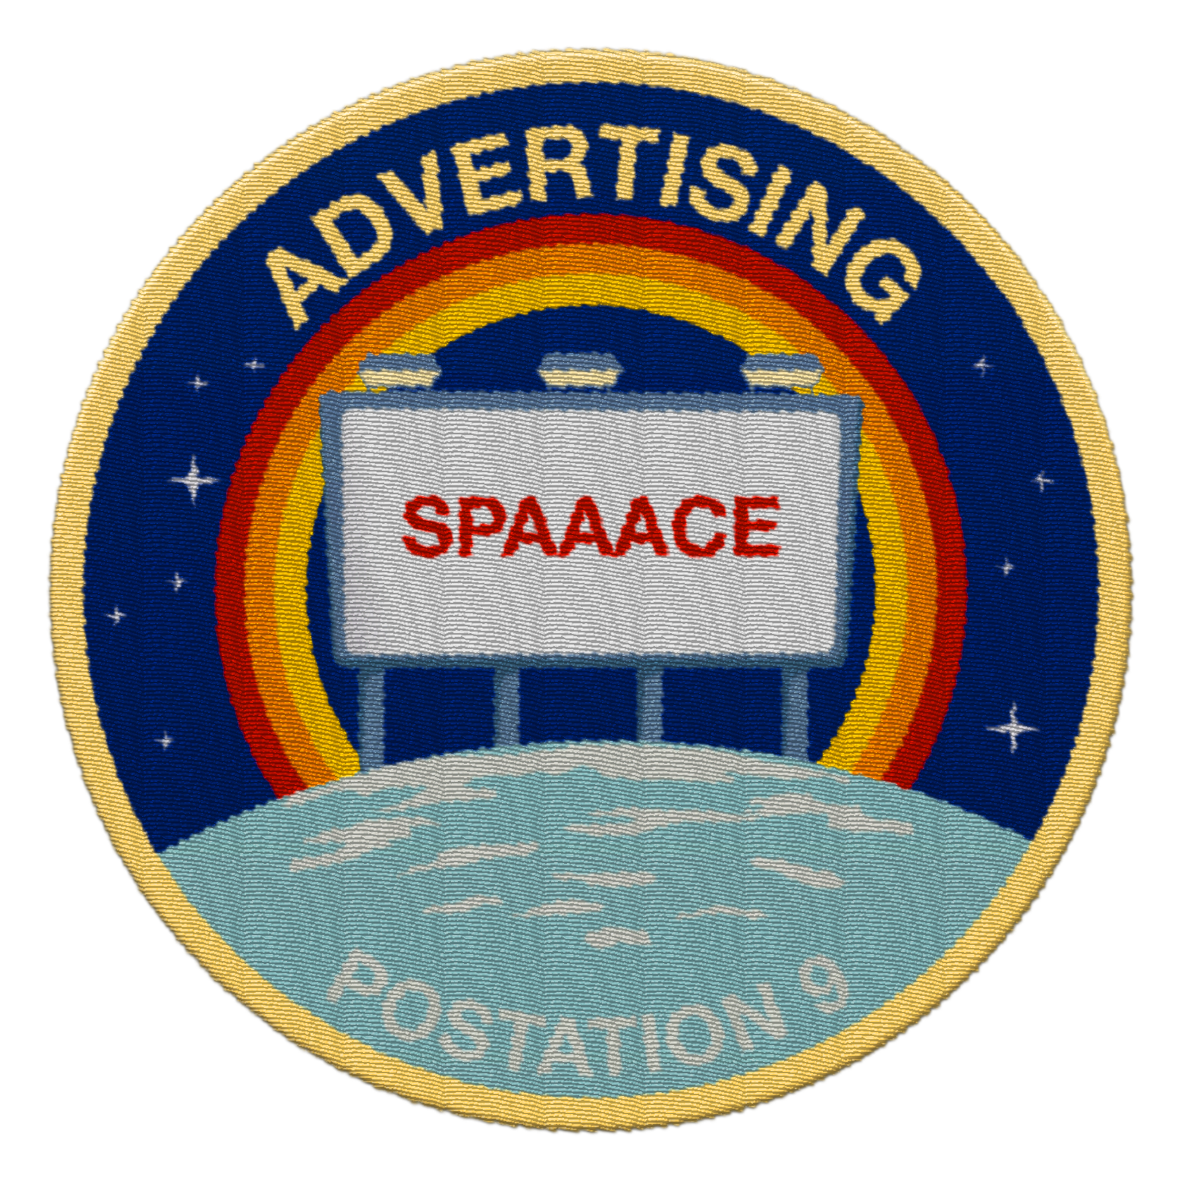 Spaaace - patch advertising